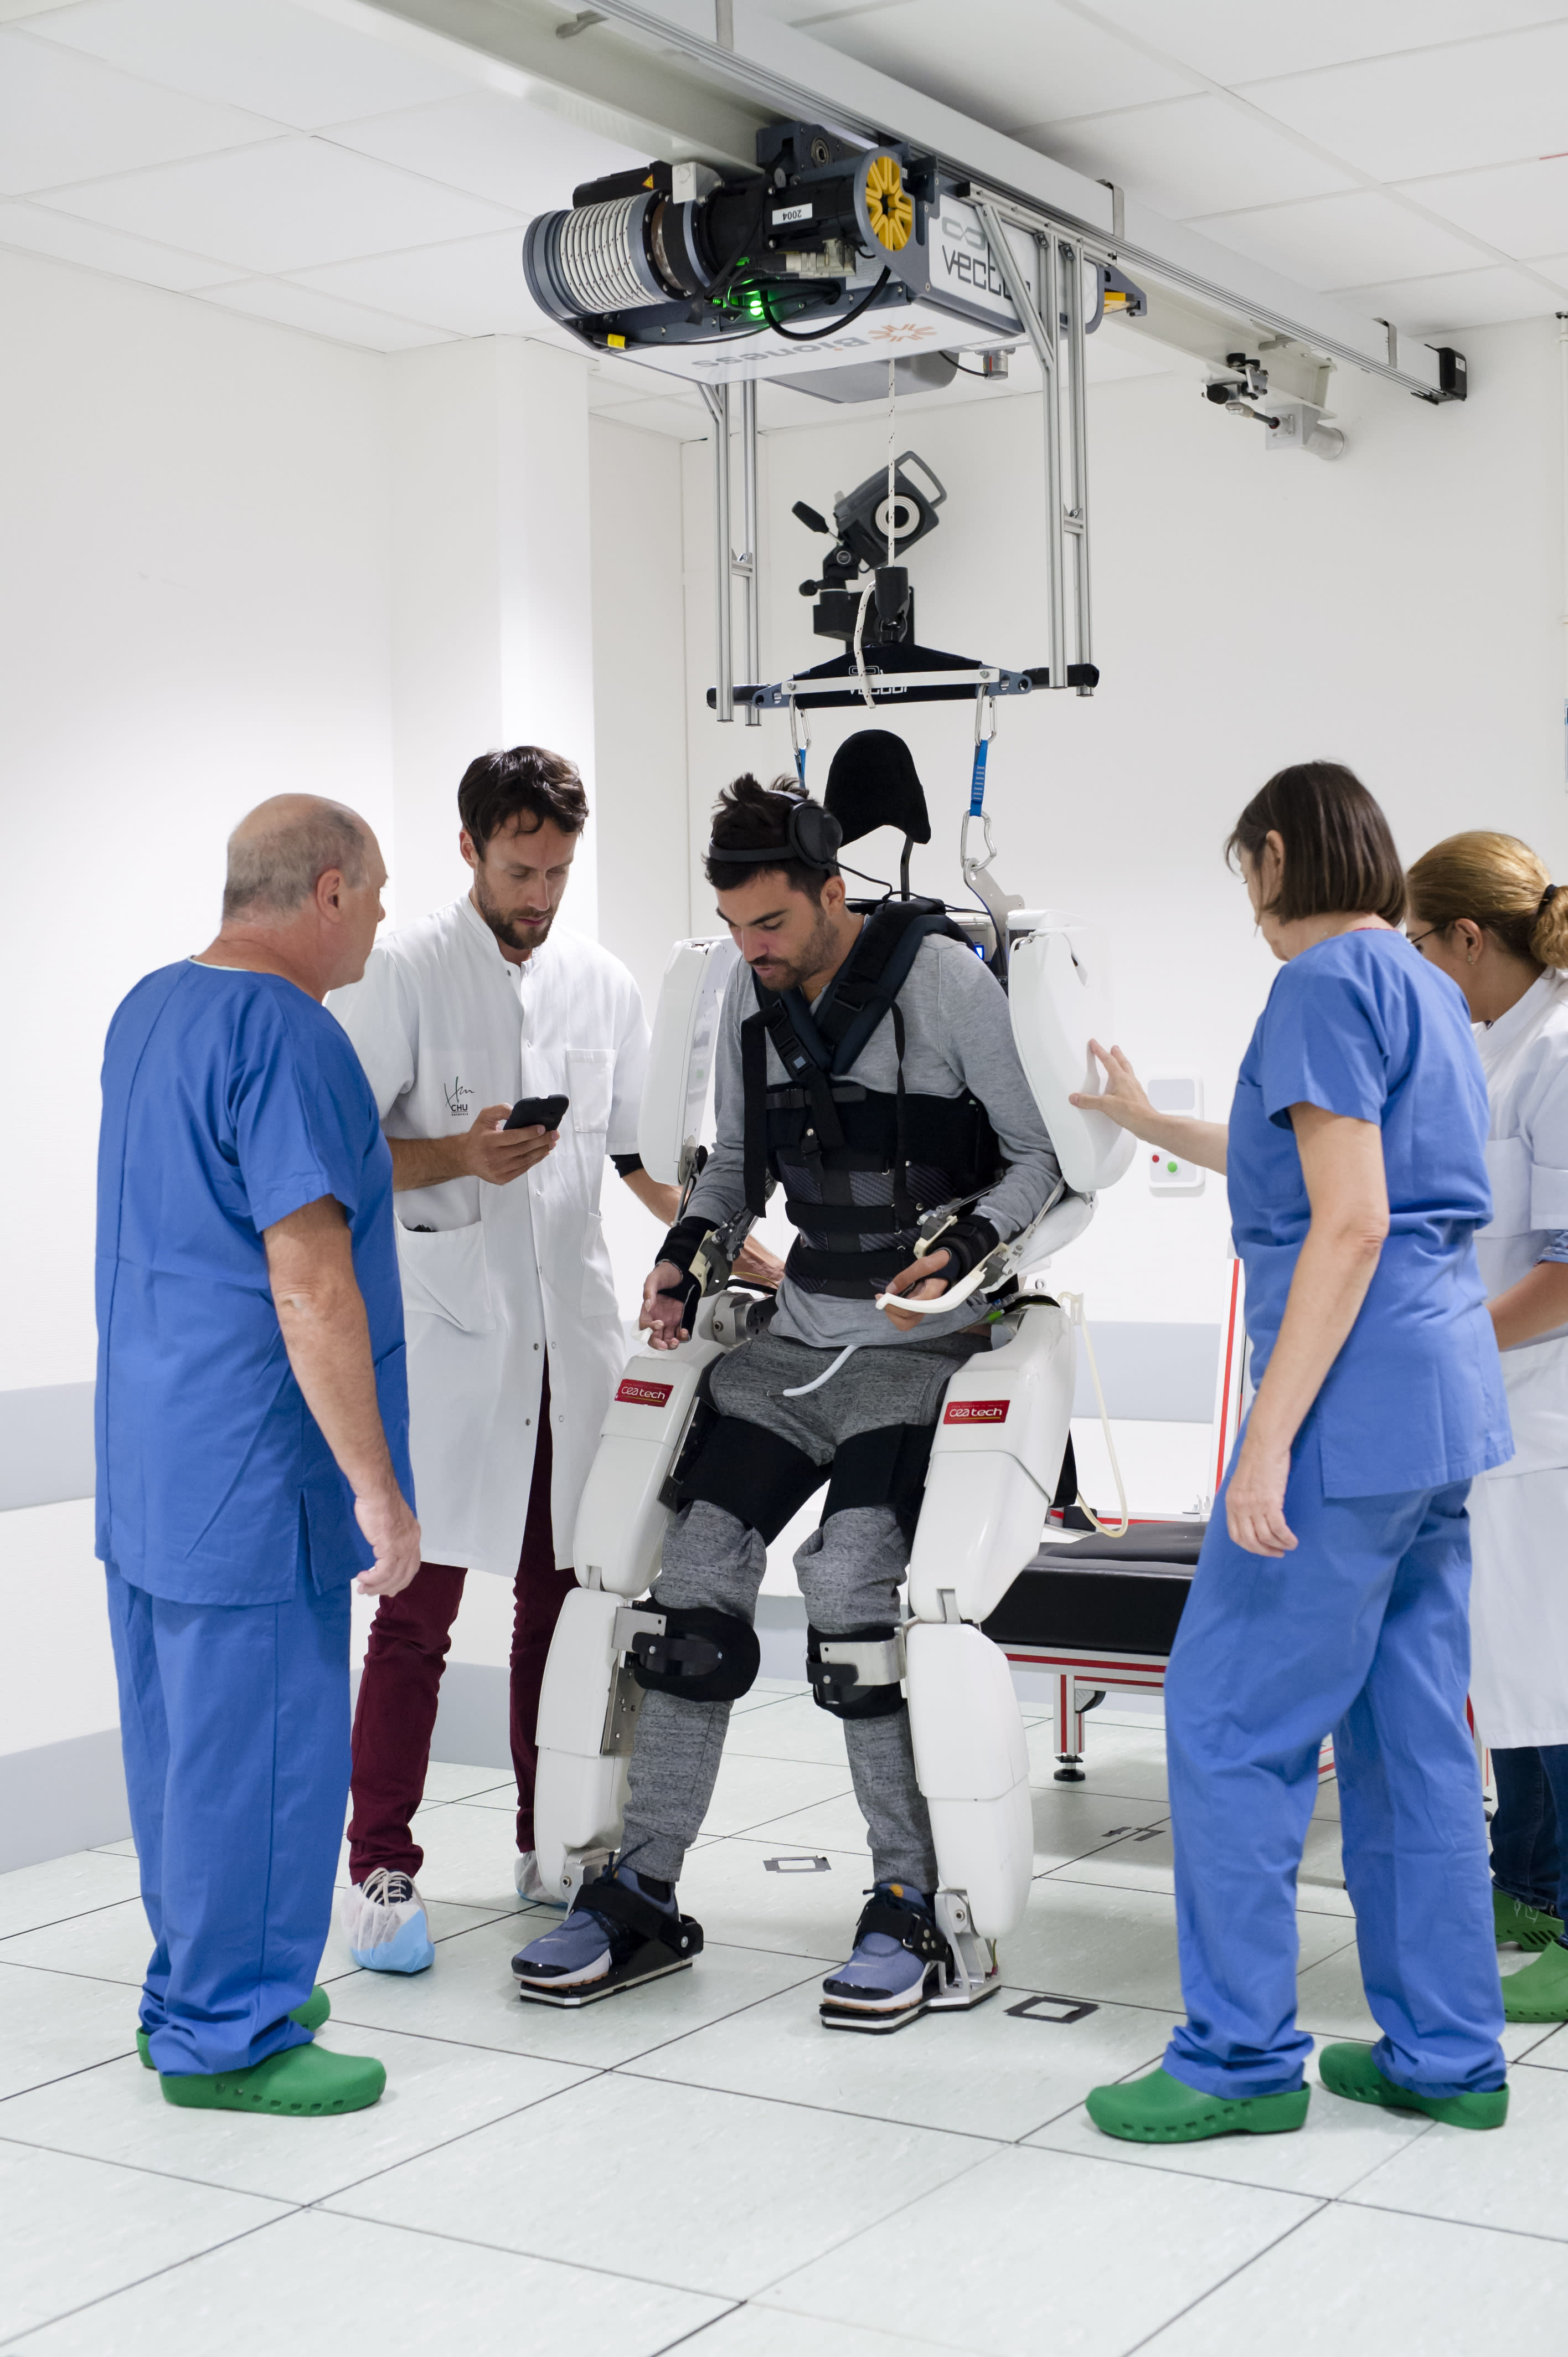 Thibault said he hadn't walked for two years before using the exoskeleton (Picture: Fonds de dotation Clinatec)